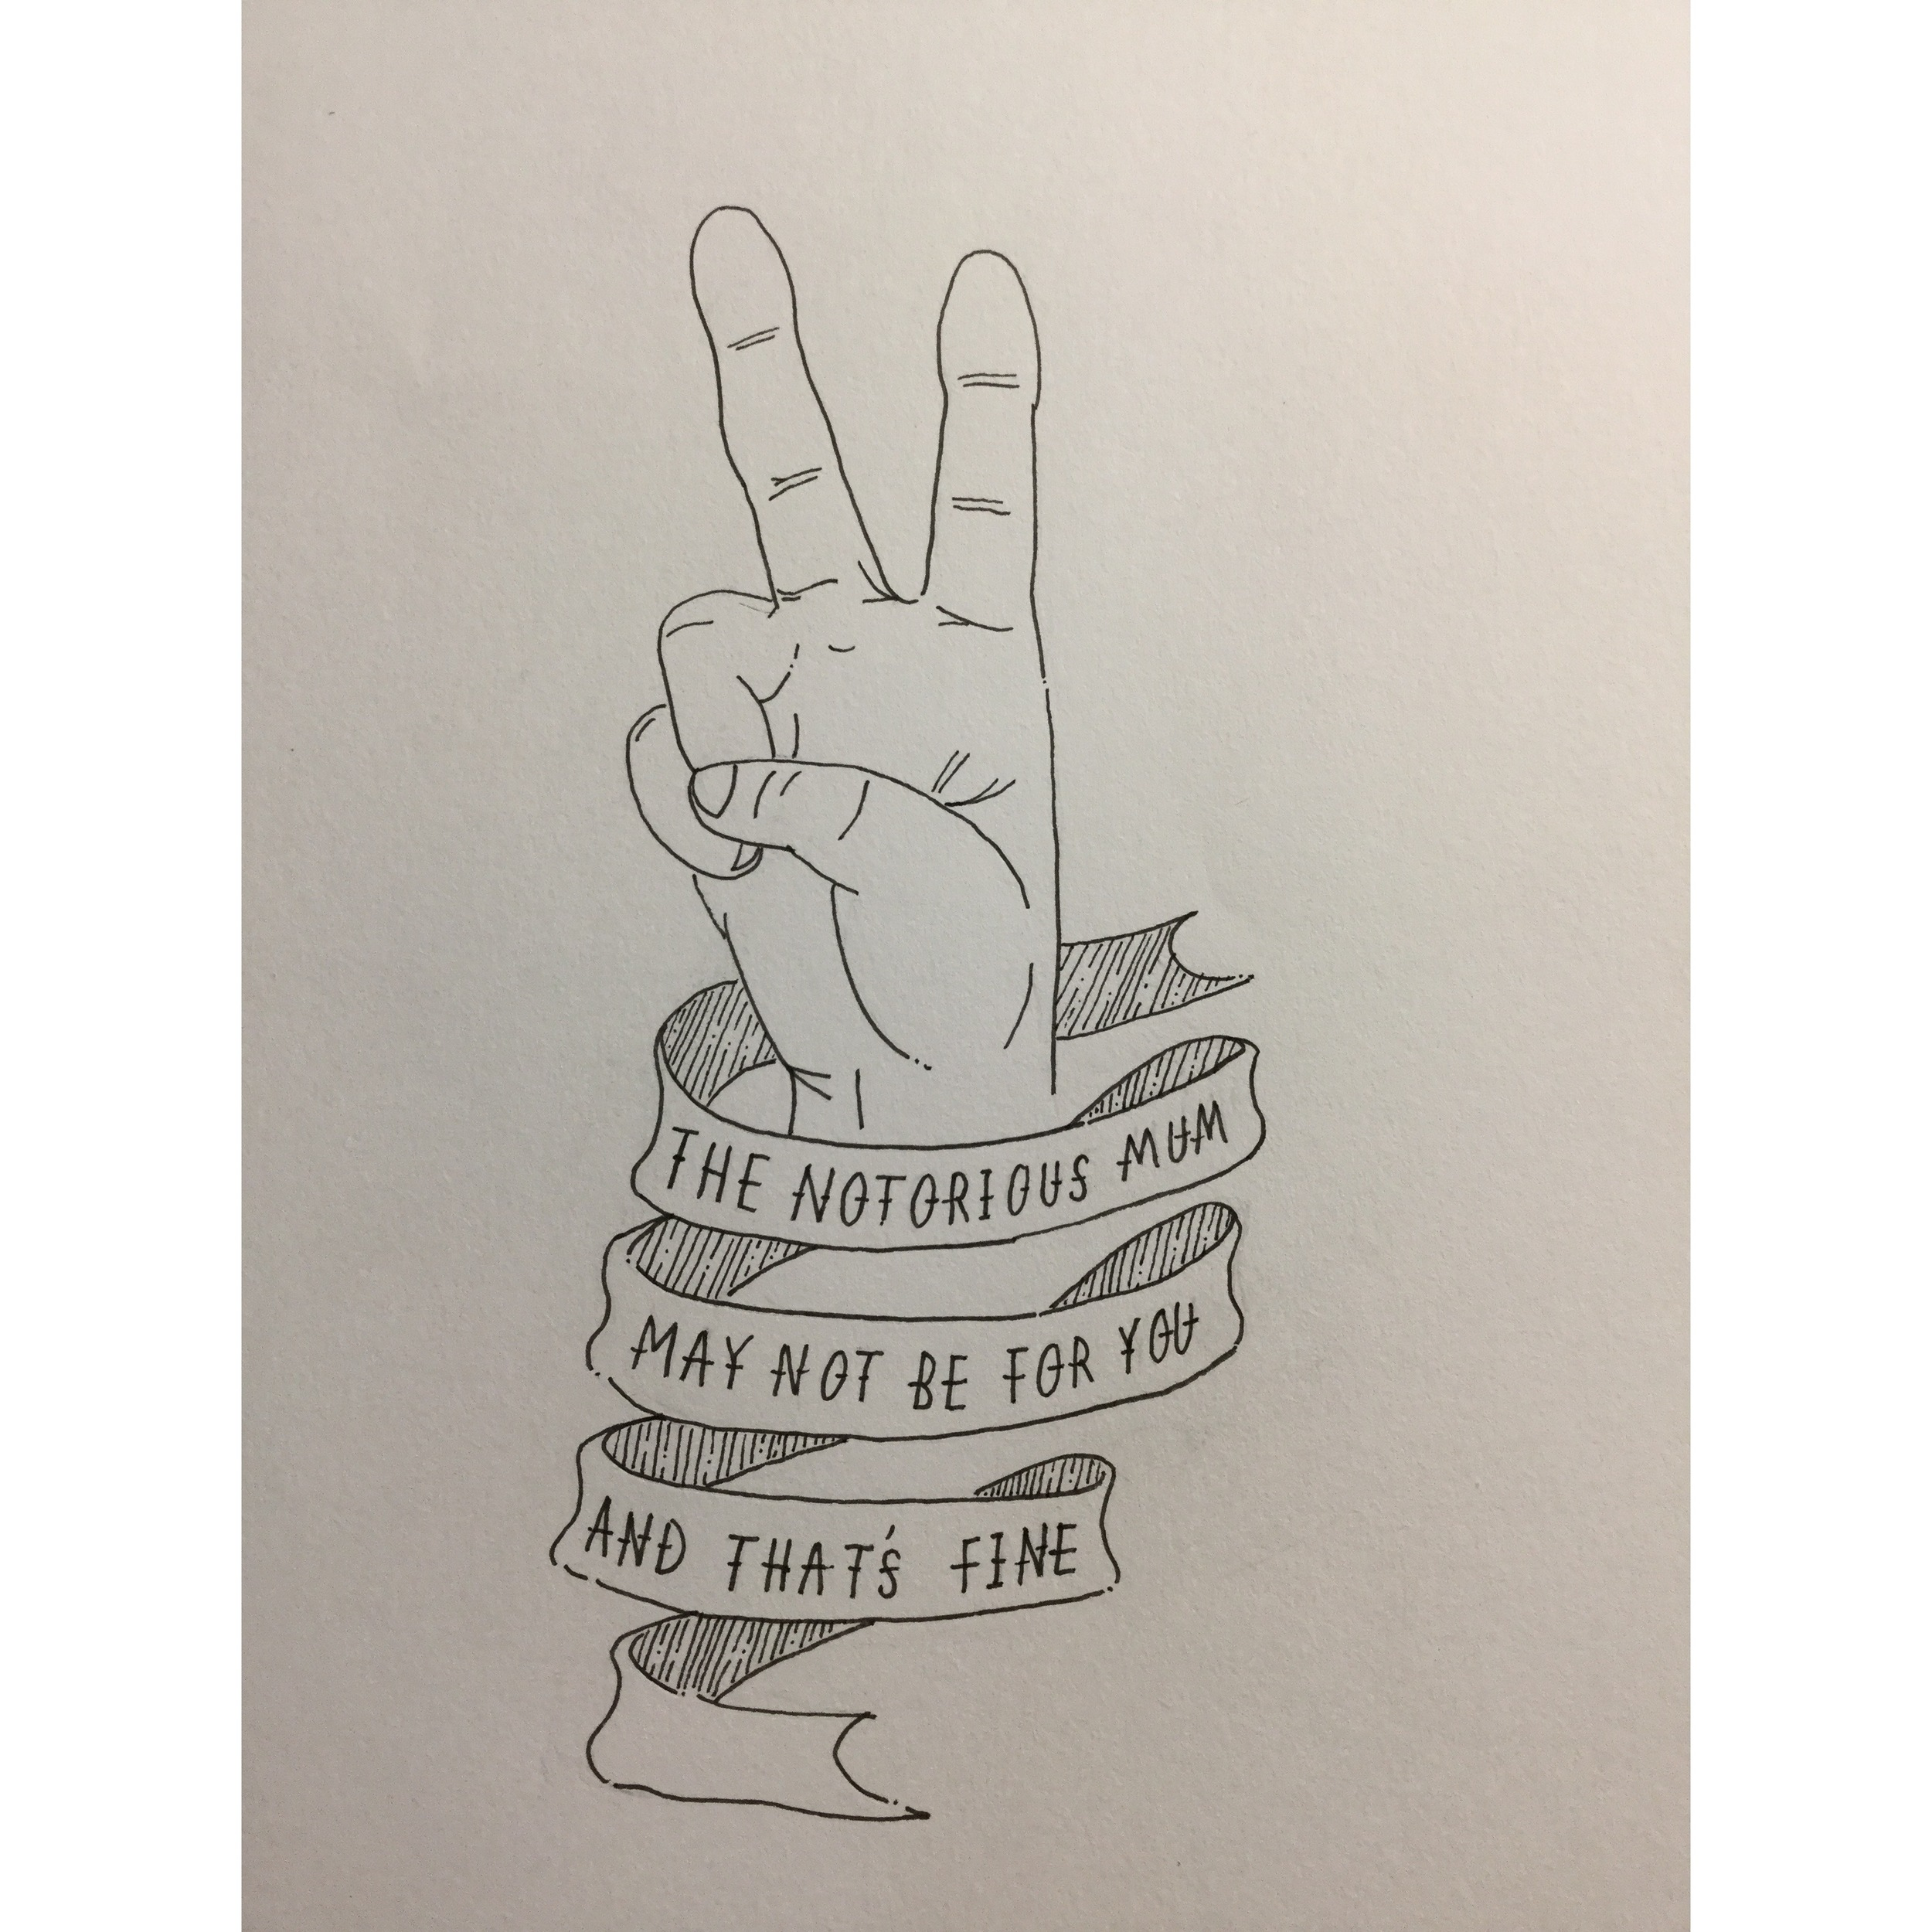 Yeah, it's a direct rip-off of Mr Heggie's doodle for Scroobius Pip's record label, but sharing is caring, right? Think of it as a HOMAGE.